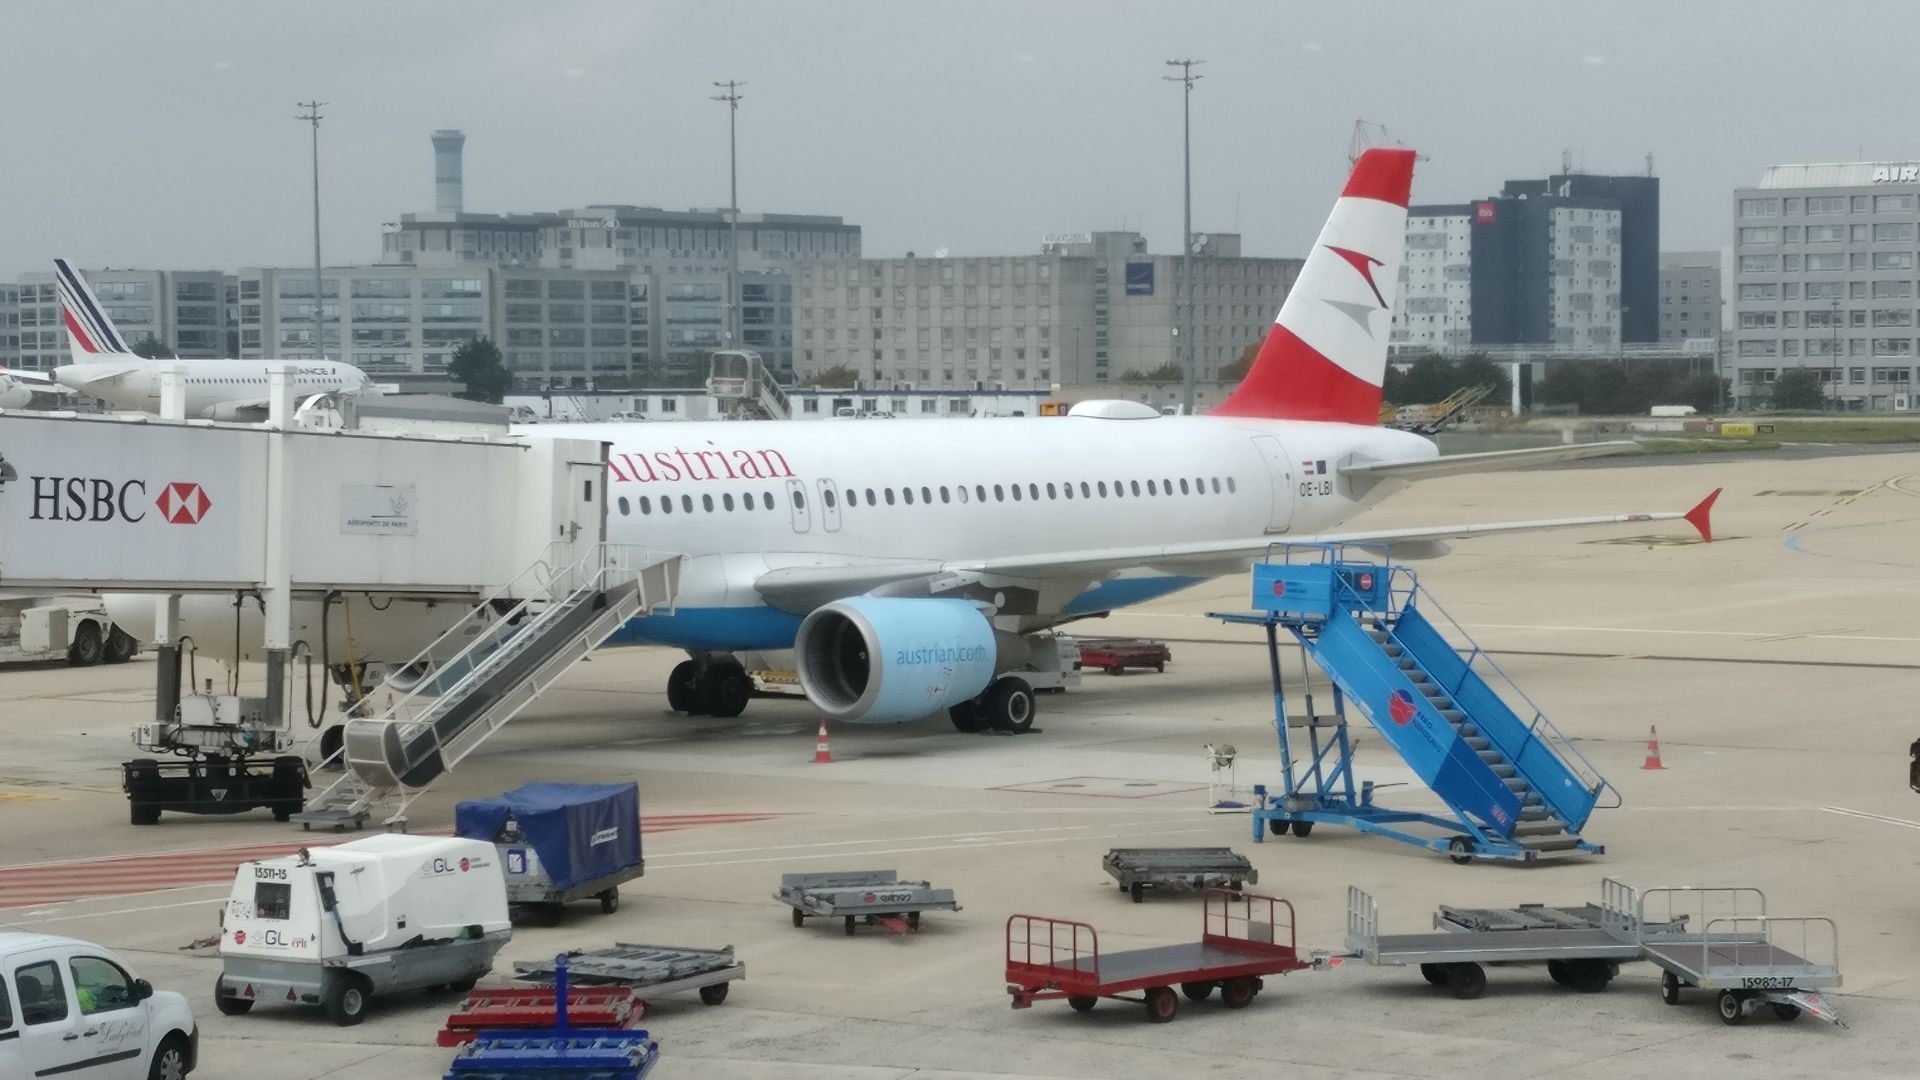 Austrian Airlines Airbus A320